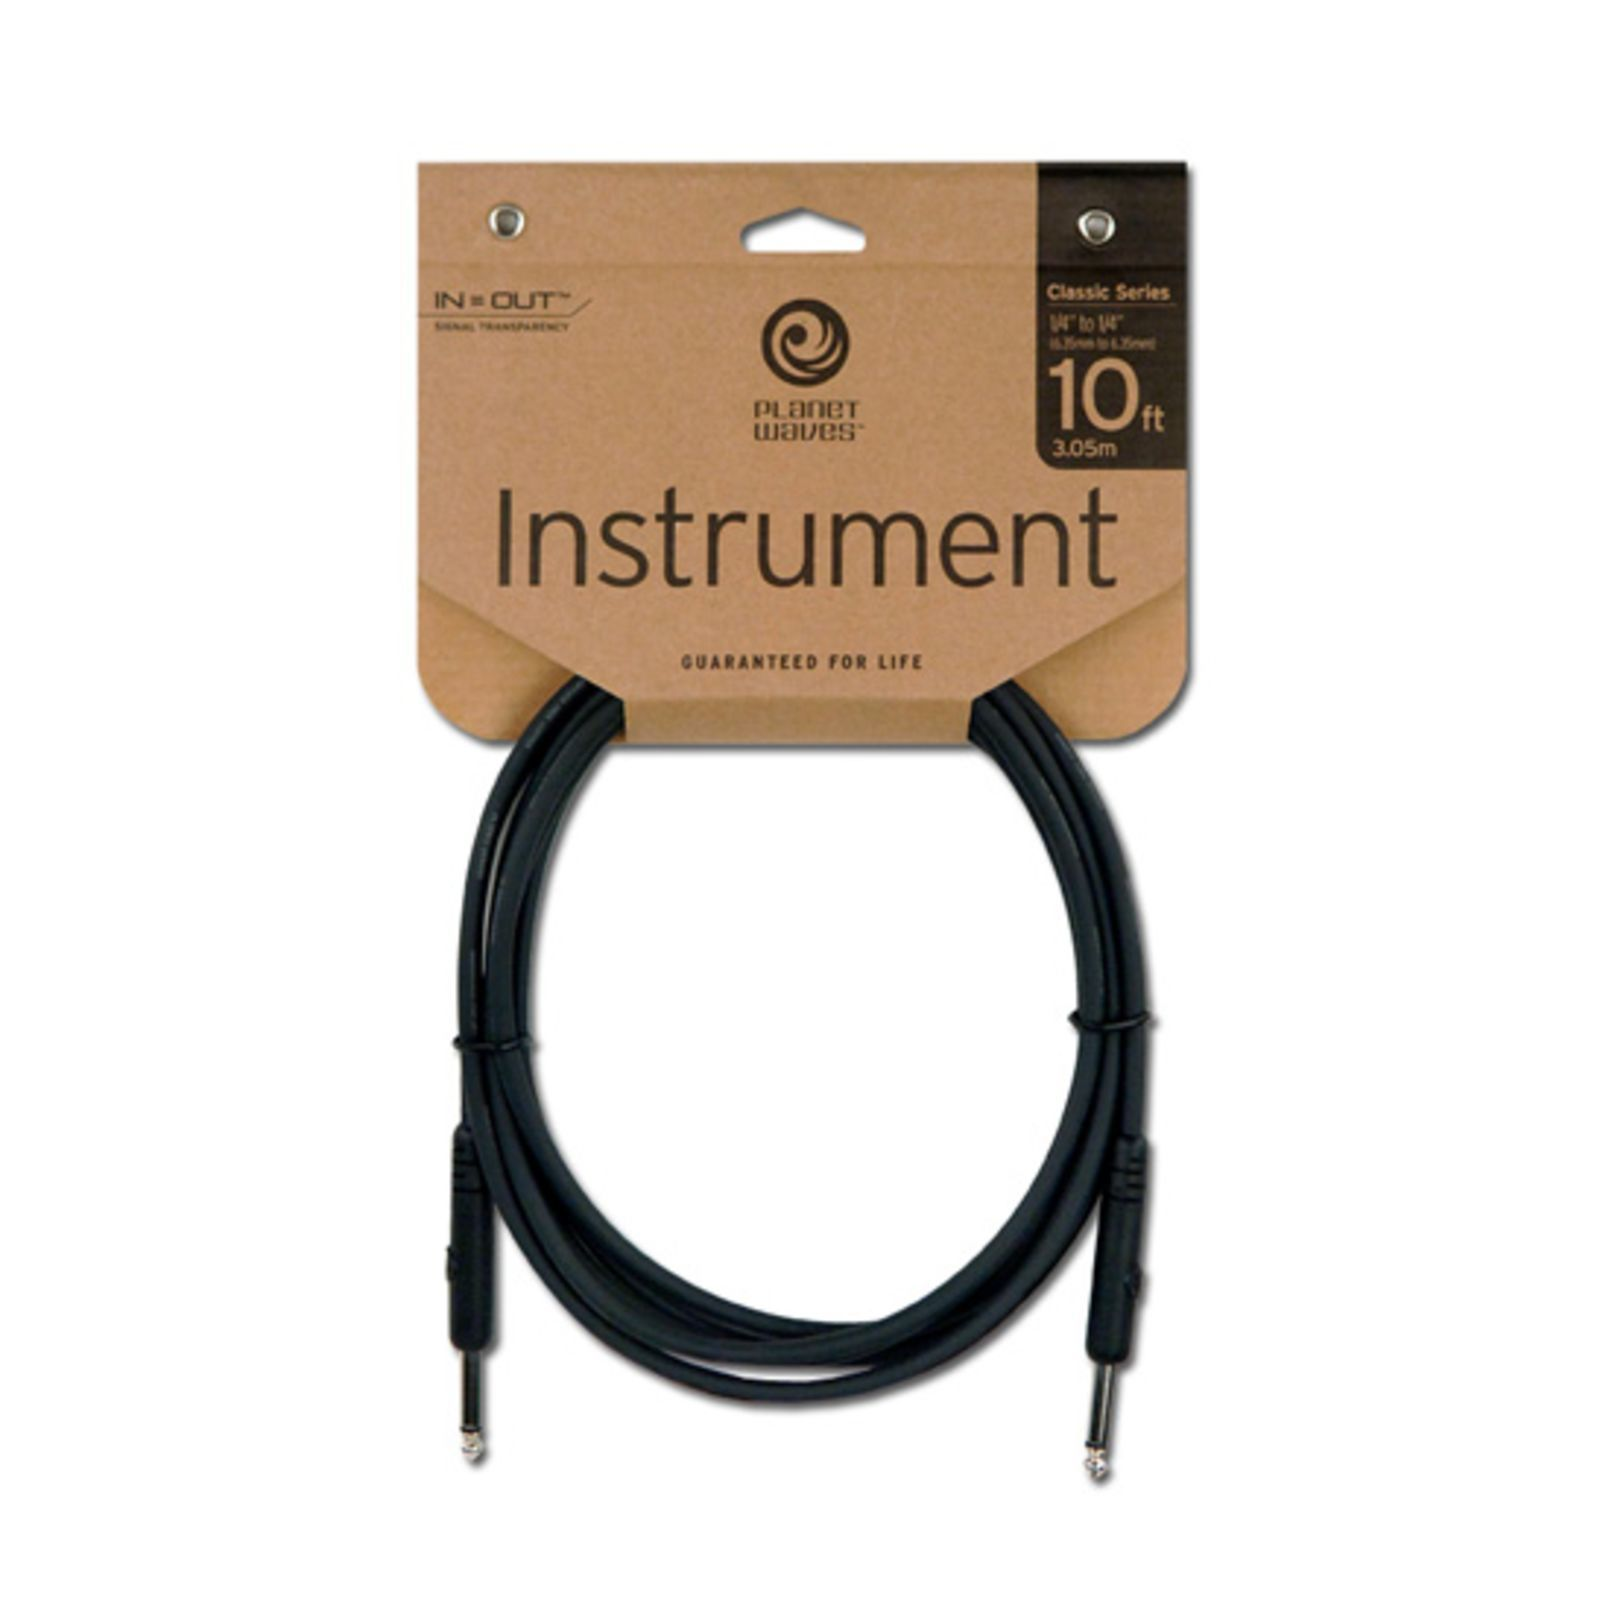 Planet Waves Instrument cable 3 meter PW-CGT-10 Straight Produktbillede